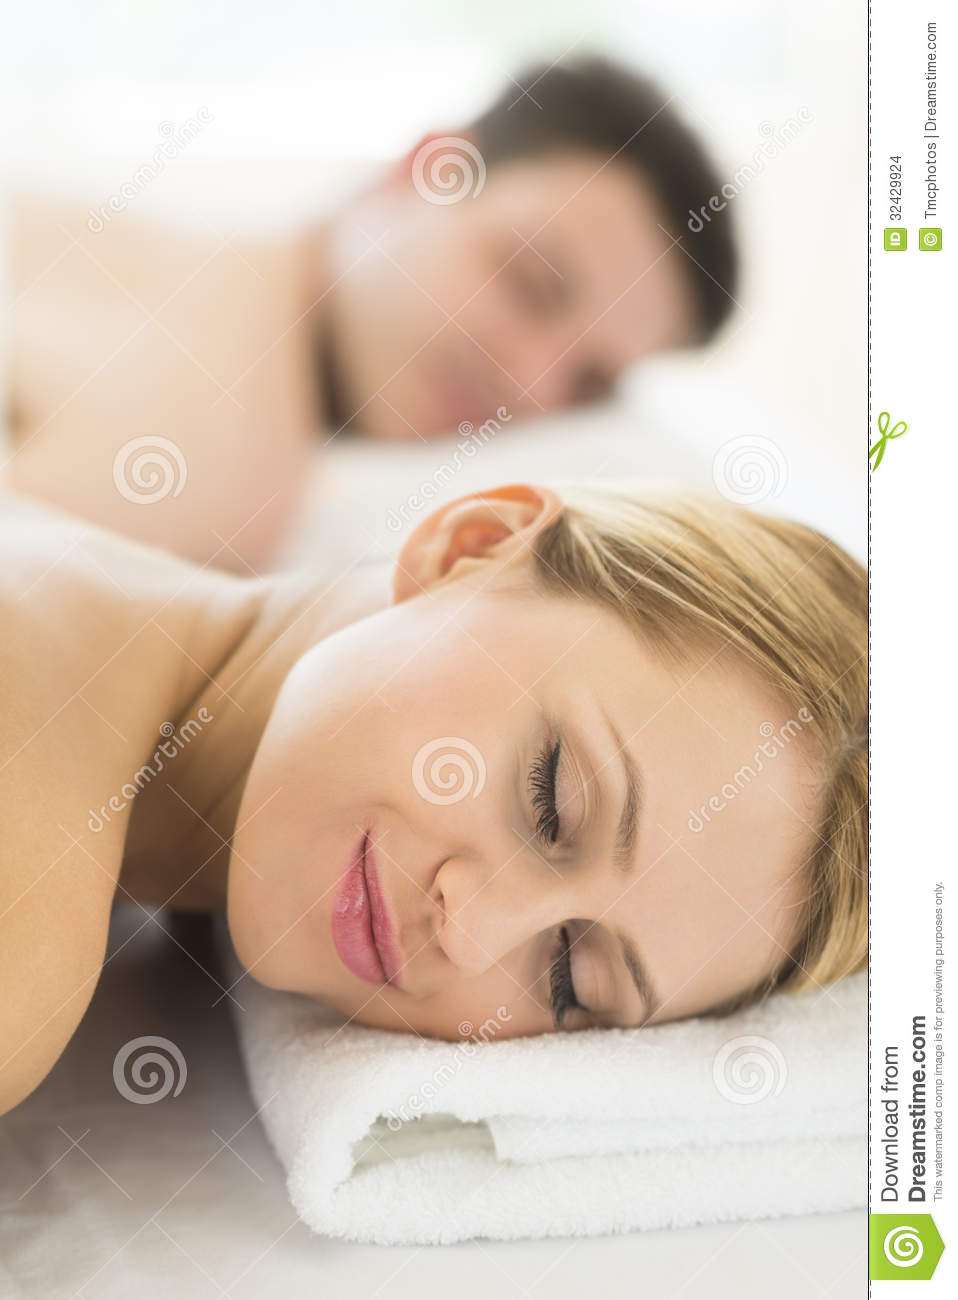 woman resting on massage table at spa stock images